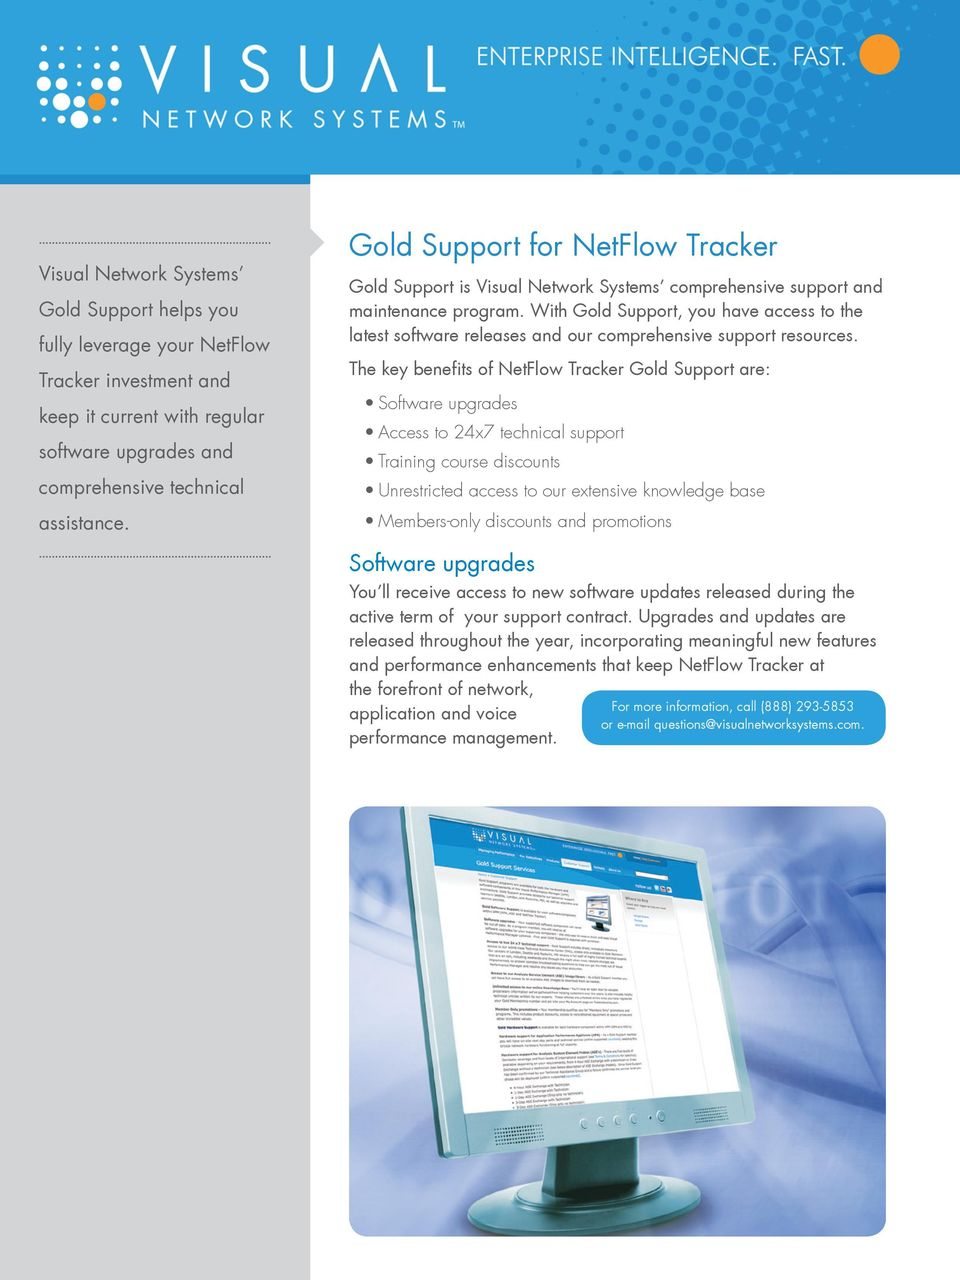 With Gold Support, you have access to the latest software releases and our comprehensive support resources.